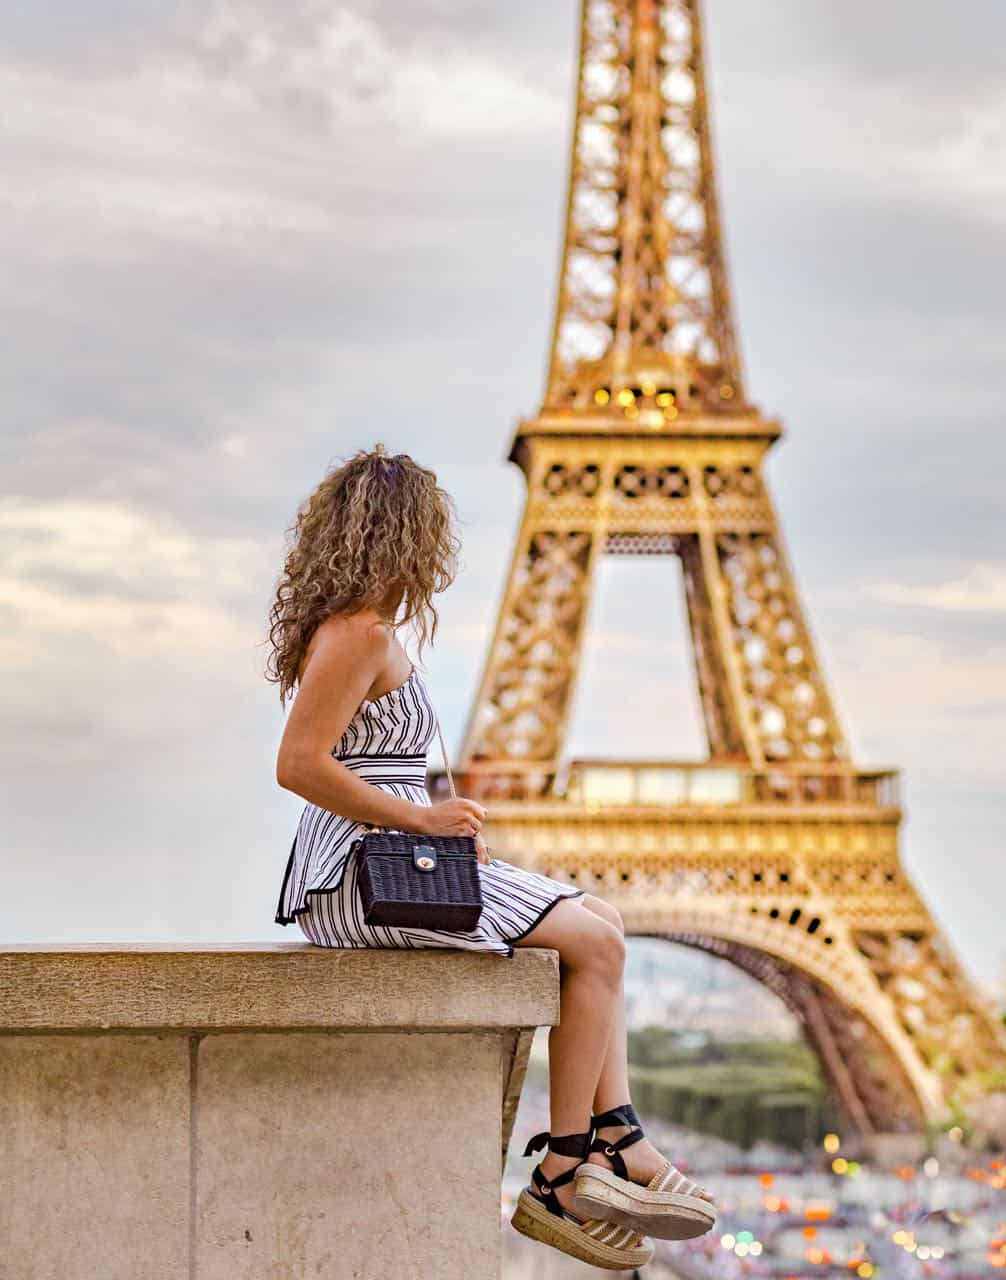 girl in dress sitting on legs with Eiffel Tower in the background